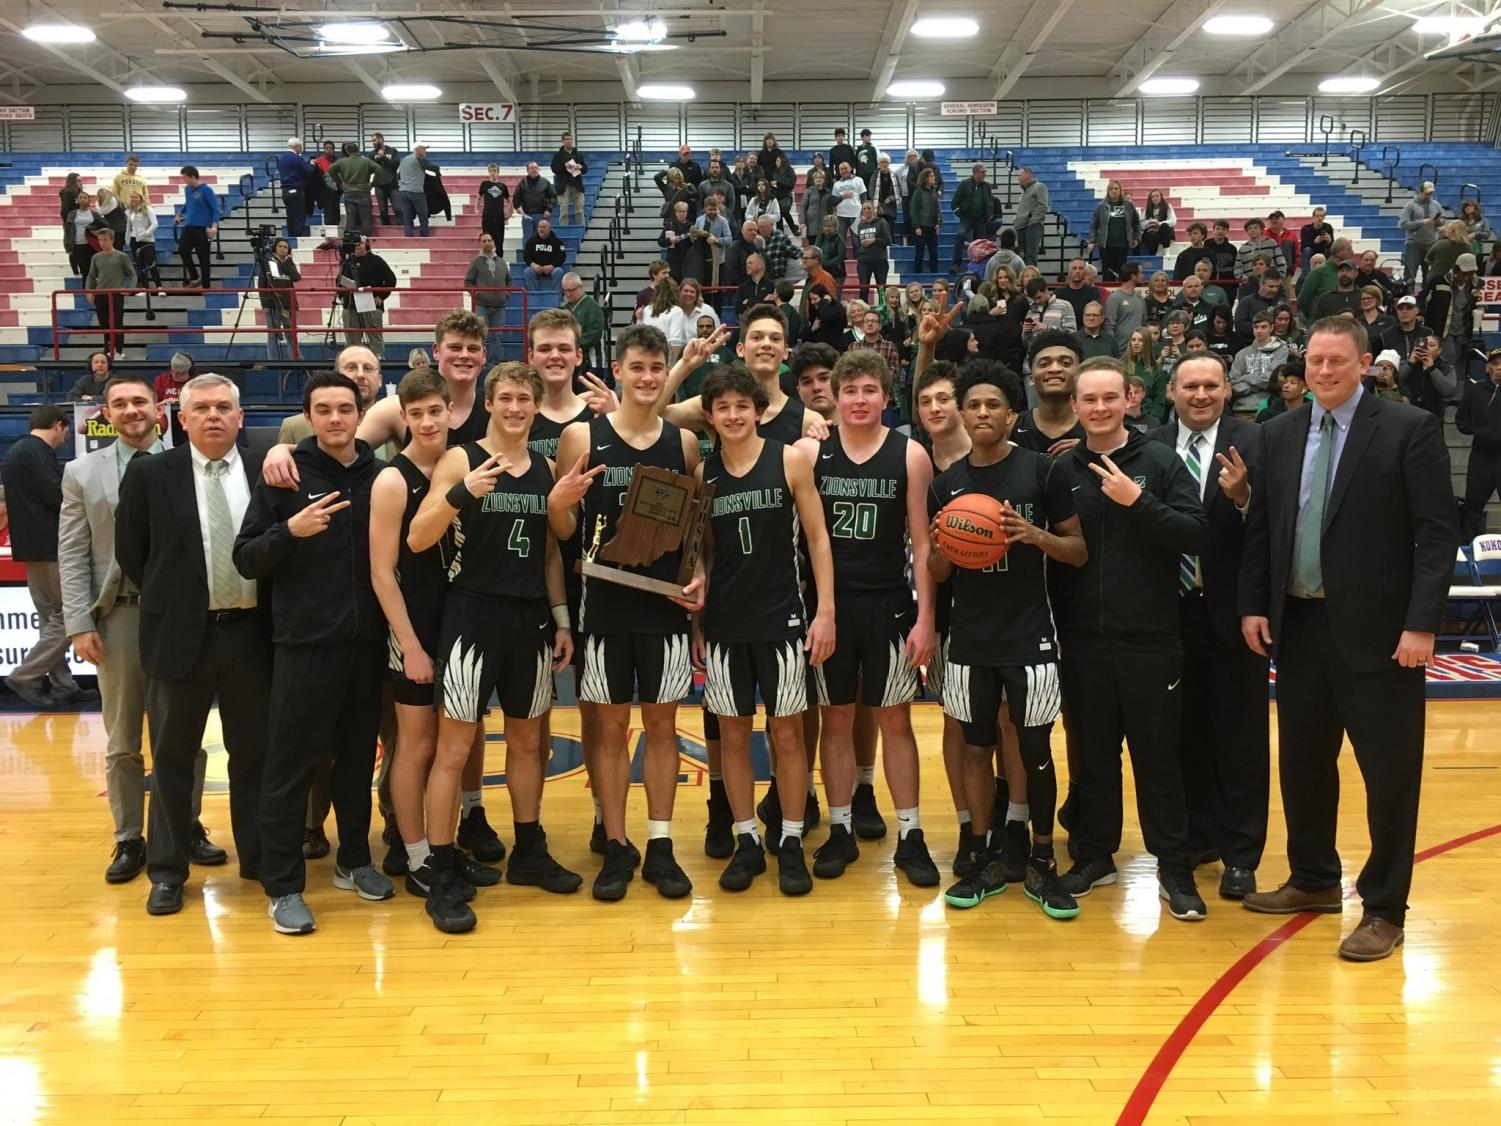 Photo provided by the Zionsville Boys Basketball twitter. The team celebrates their win Saturday night with the Sectional Seven trophy.